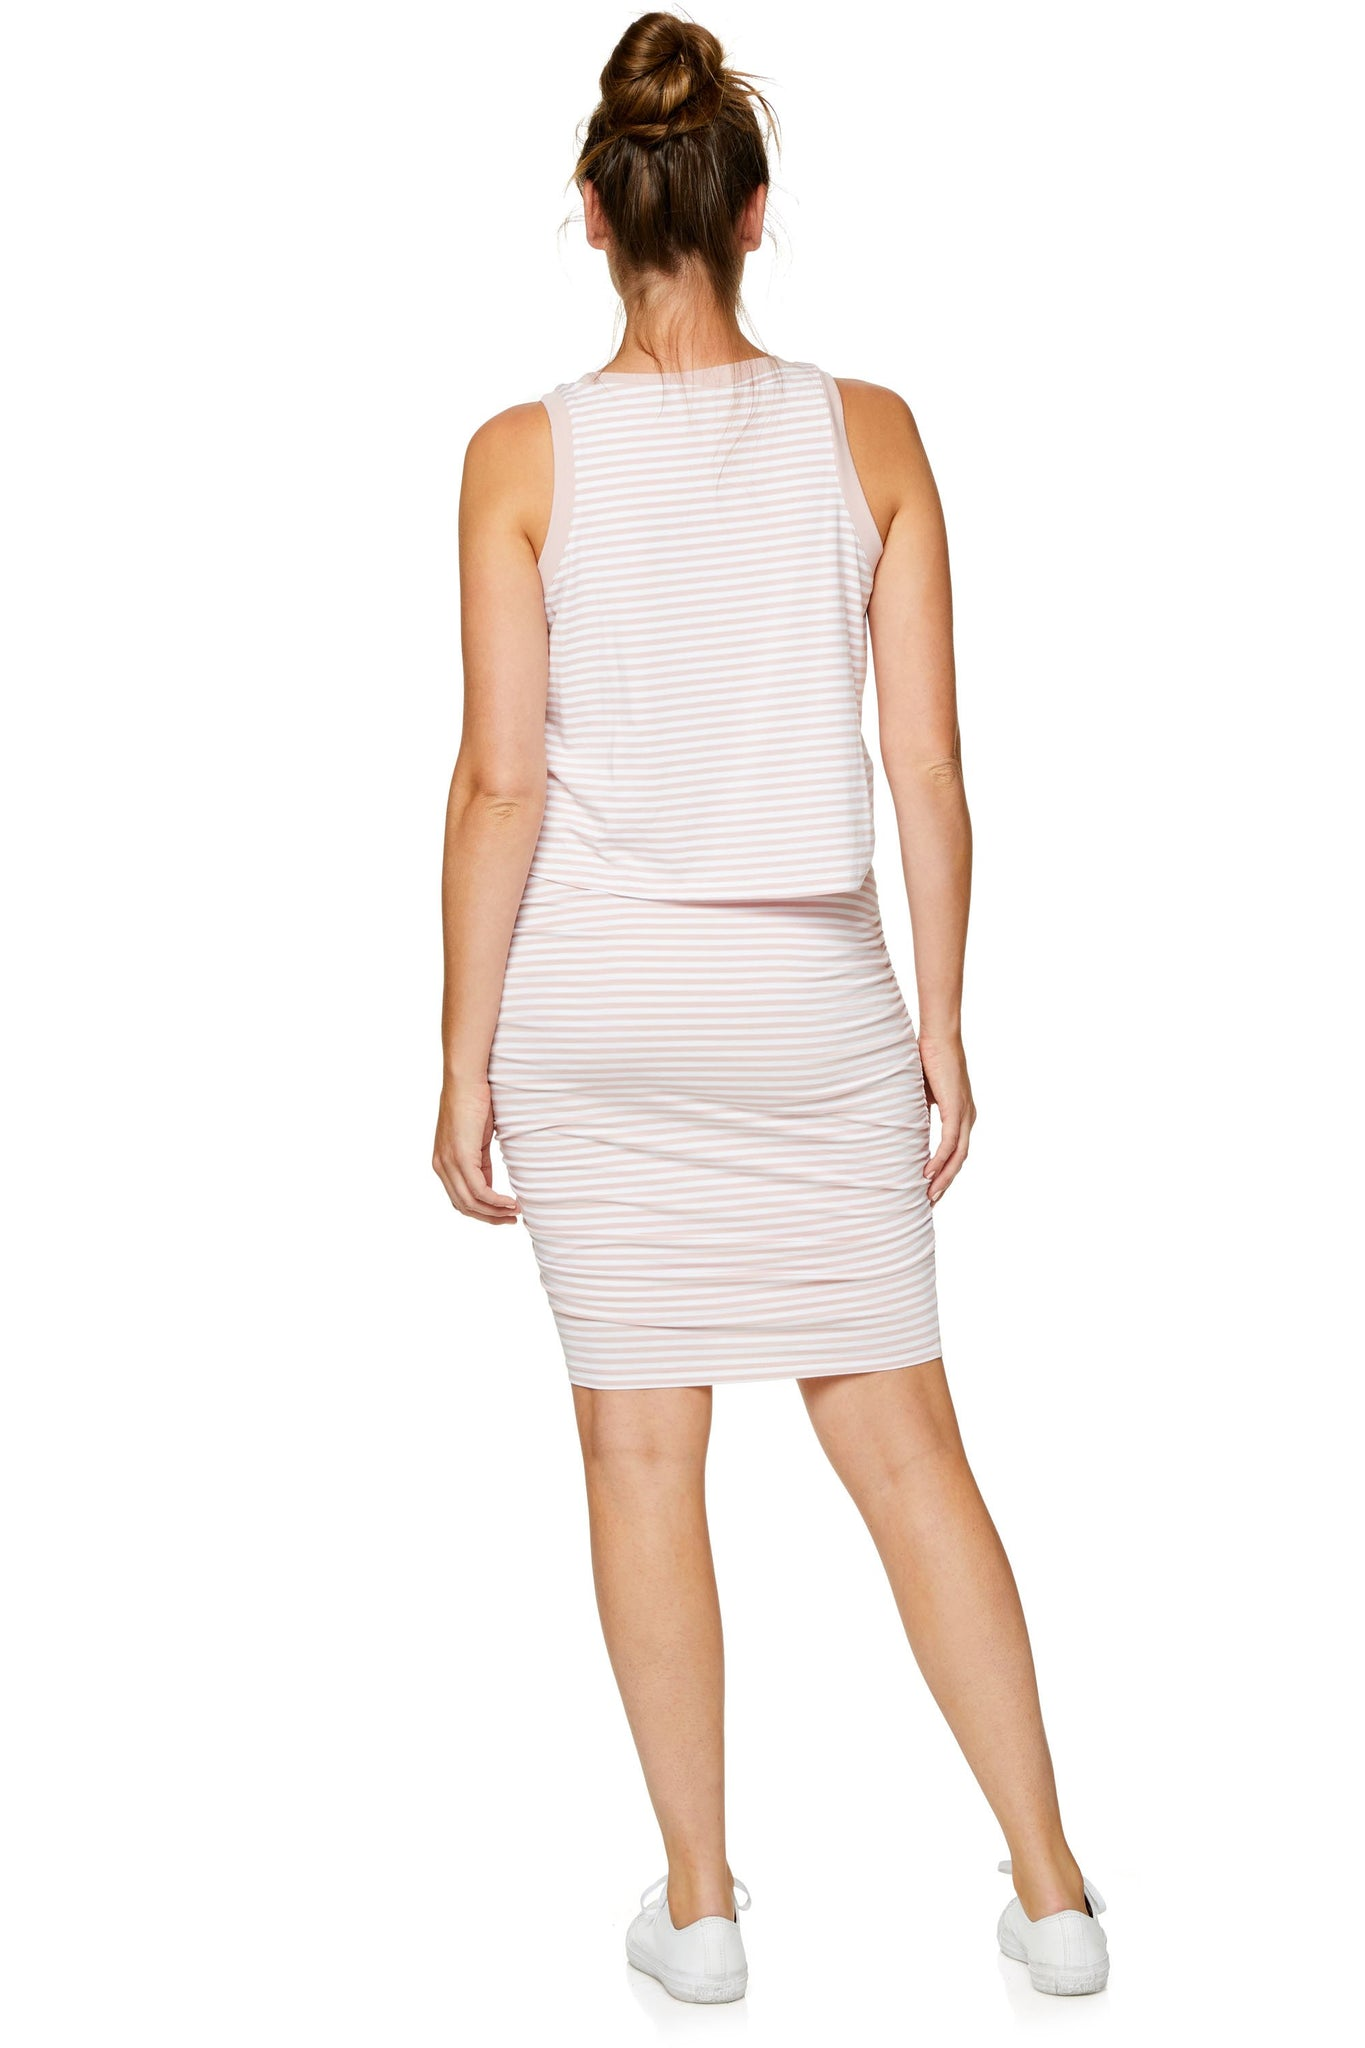 Stripe nursing & maternity dress - pink 7